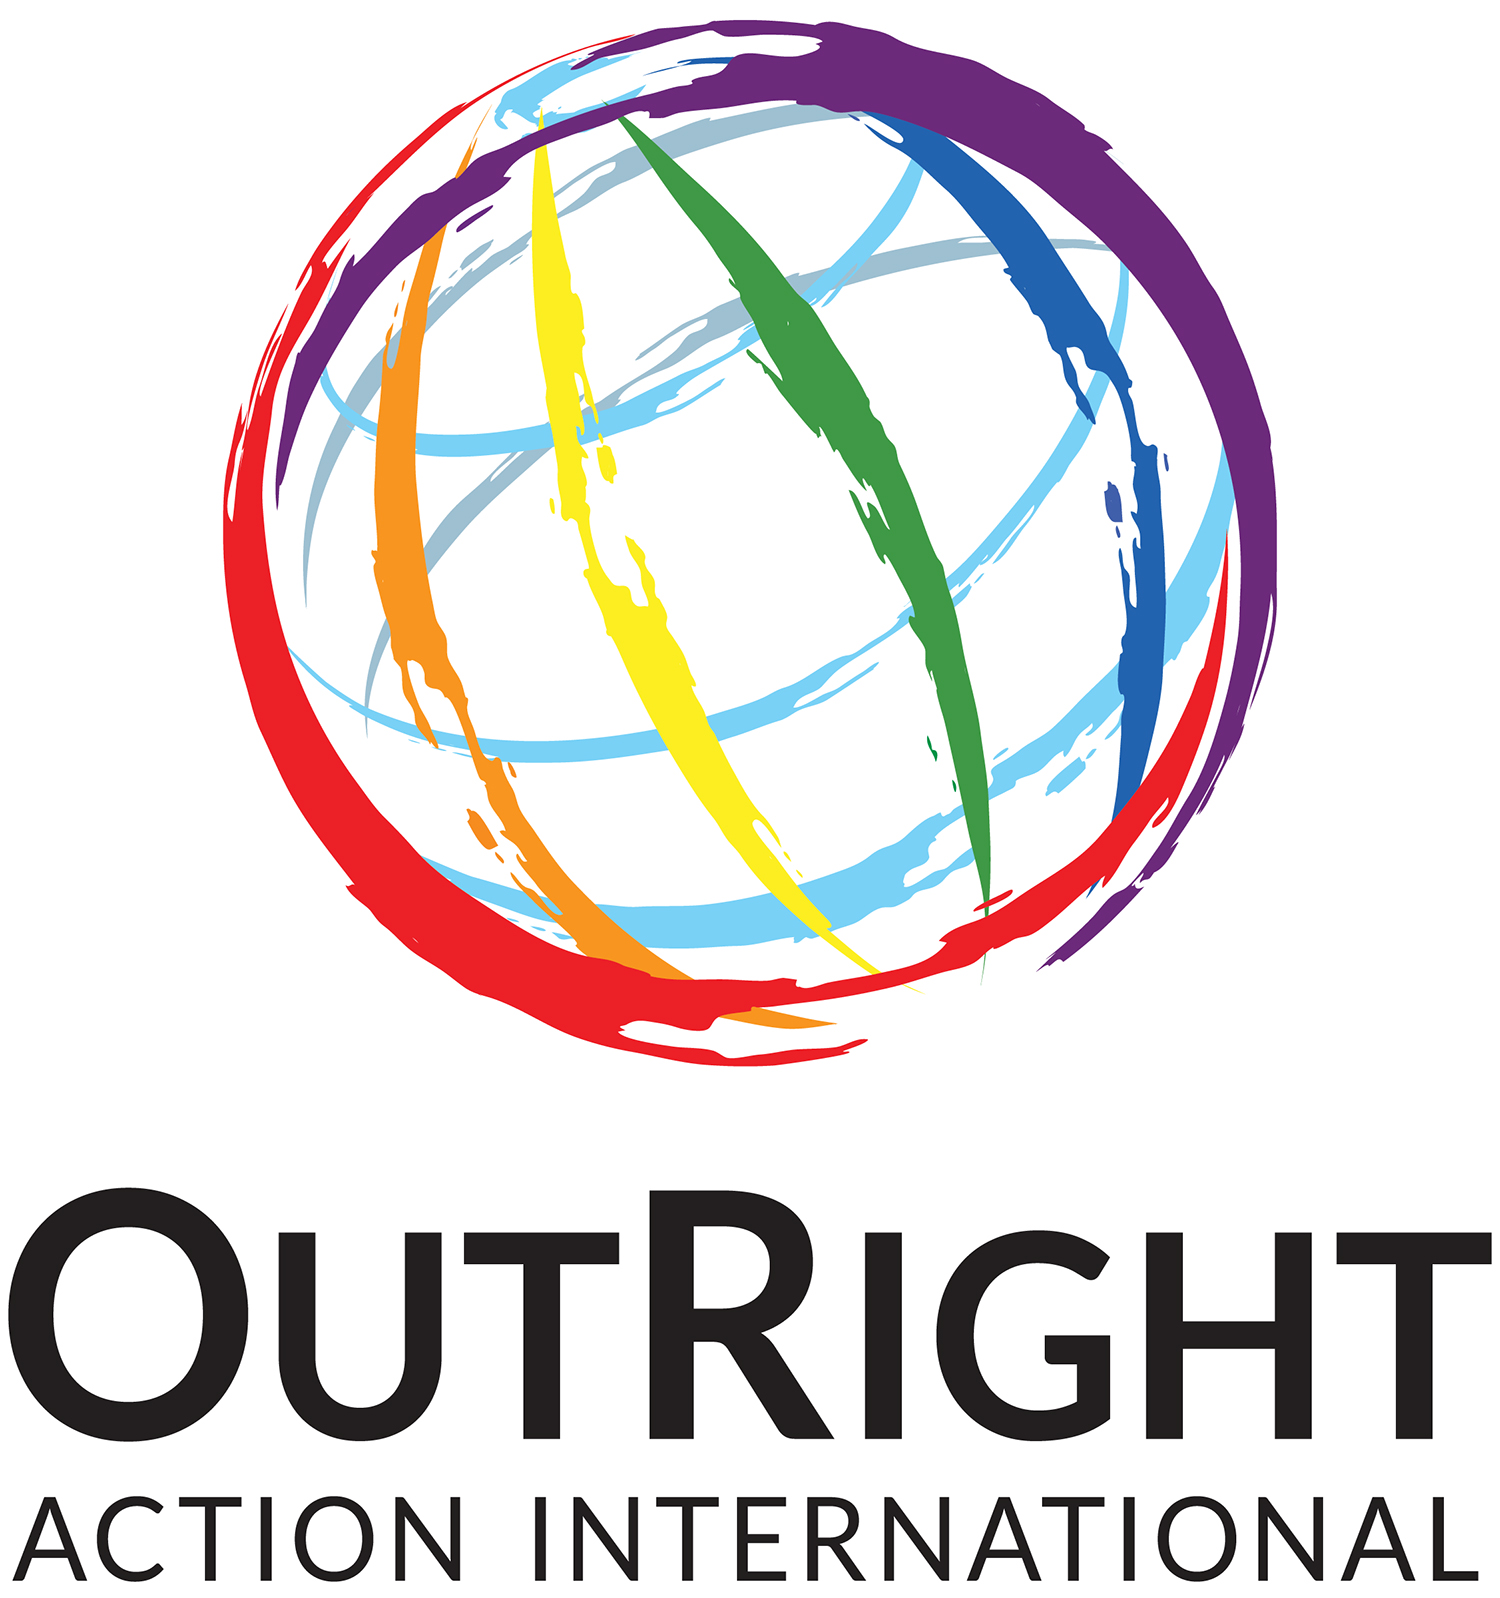 OutRight International